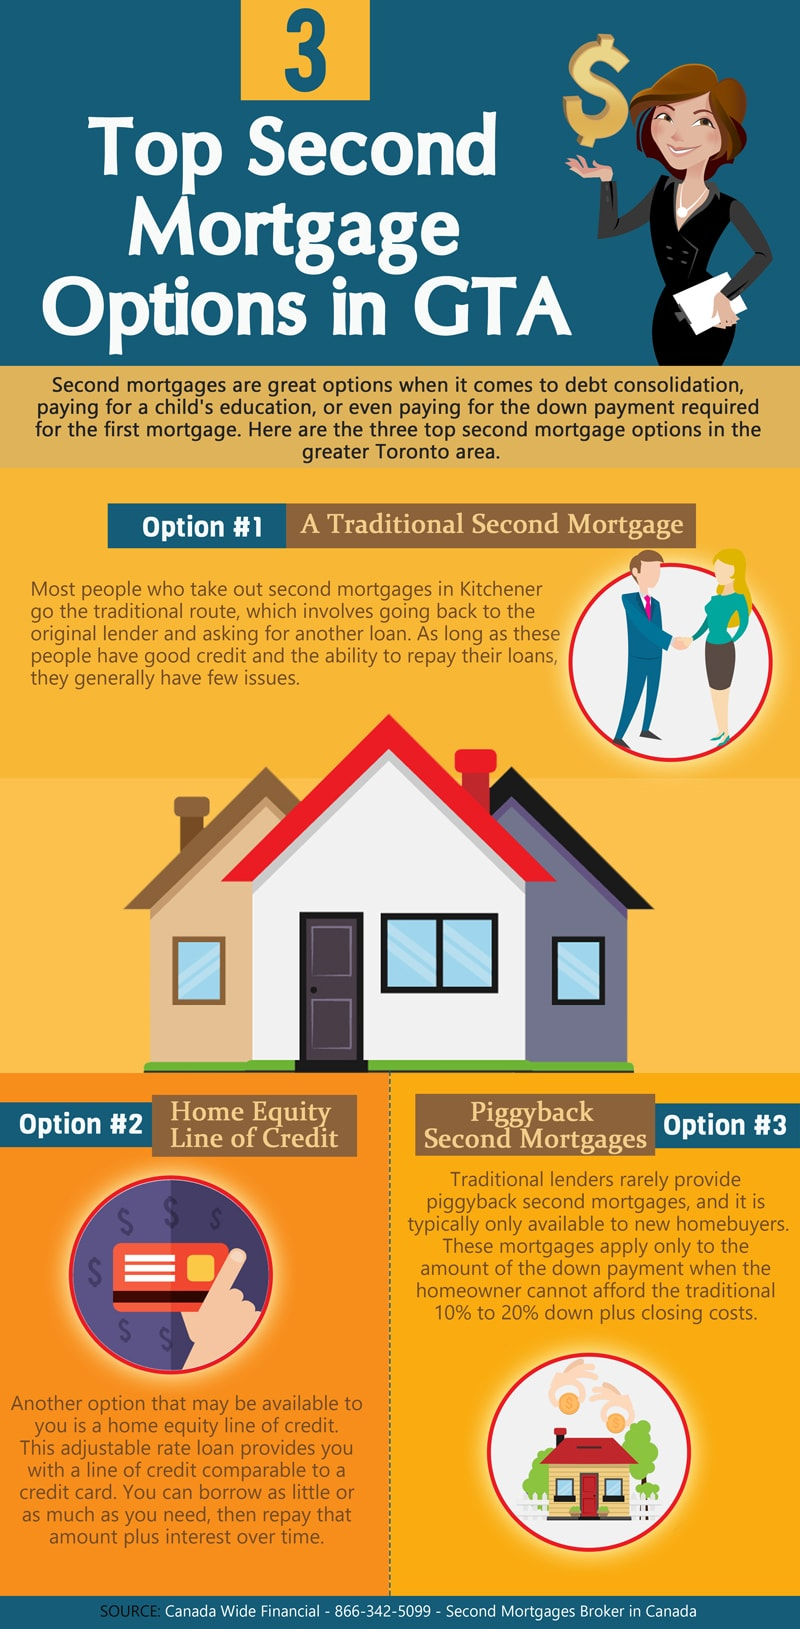 3 Top Second Mortgage Options in GTA - Infographic